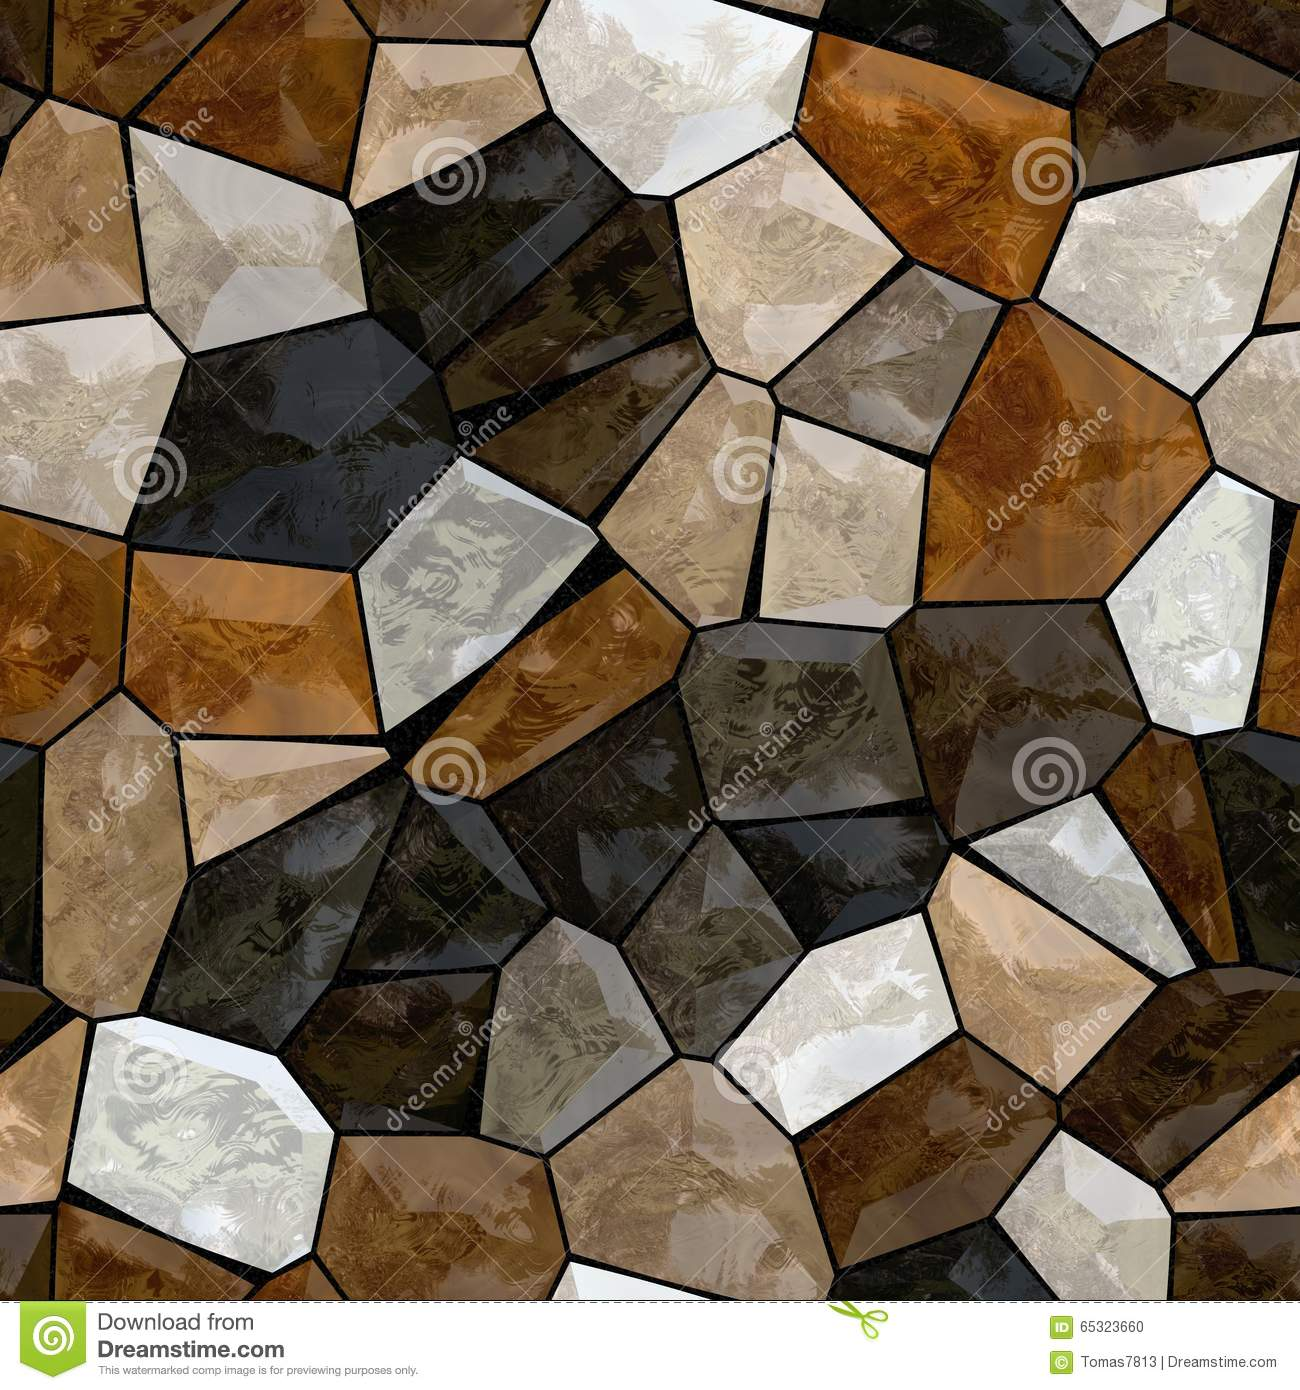 abstract computer decorative different generated illustration pattern shapes stones - Decorative Stones